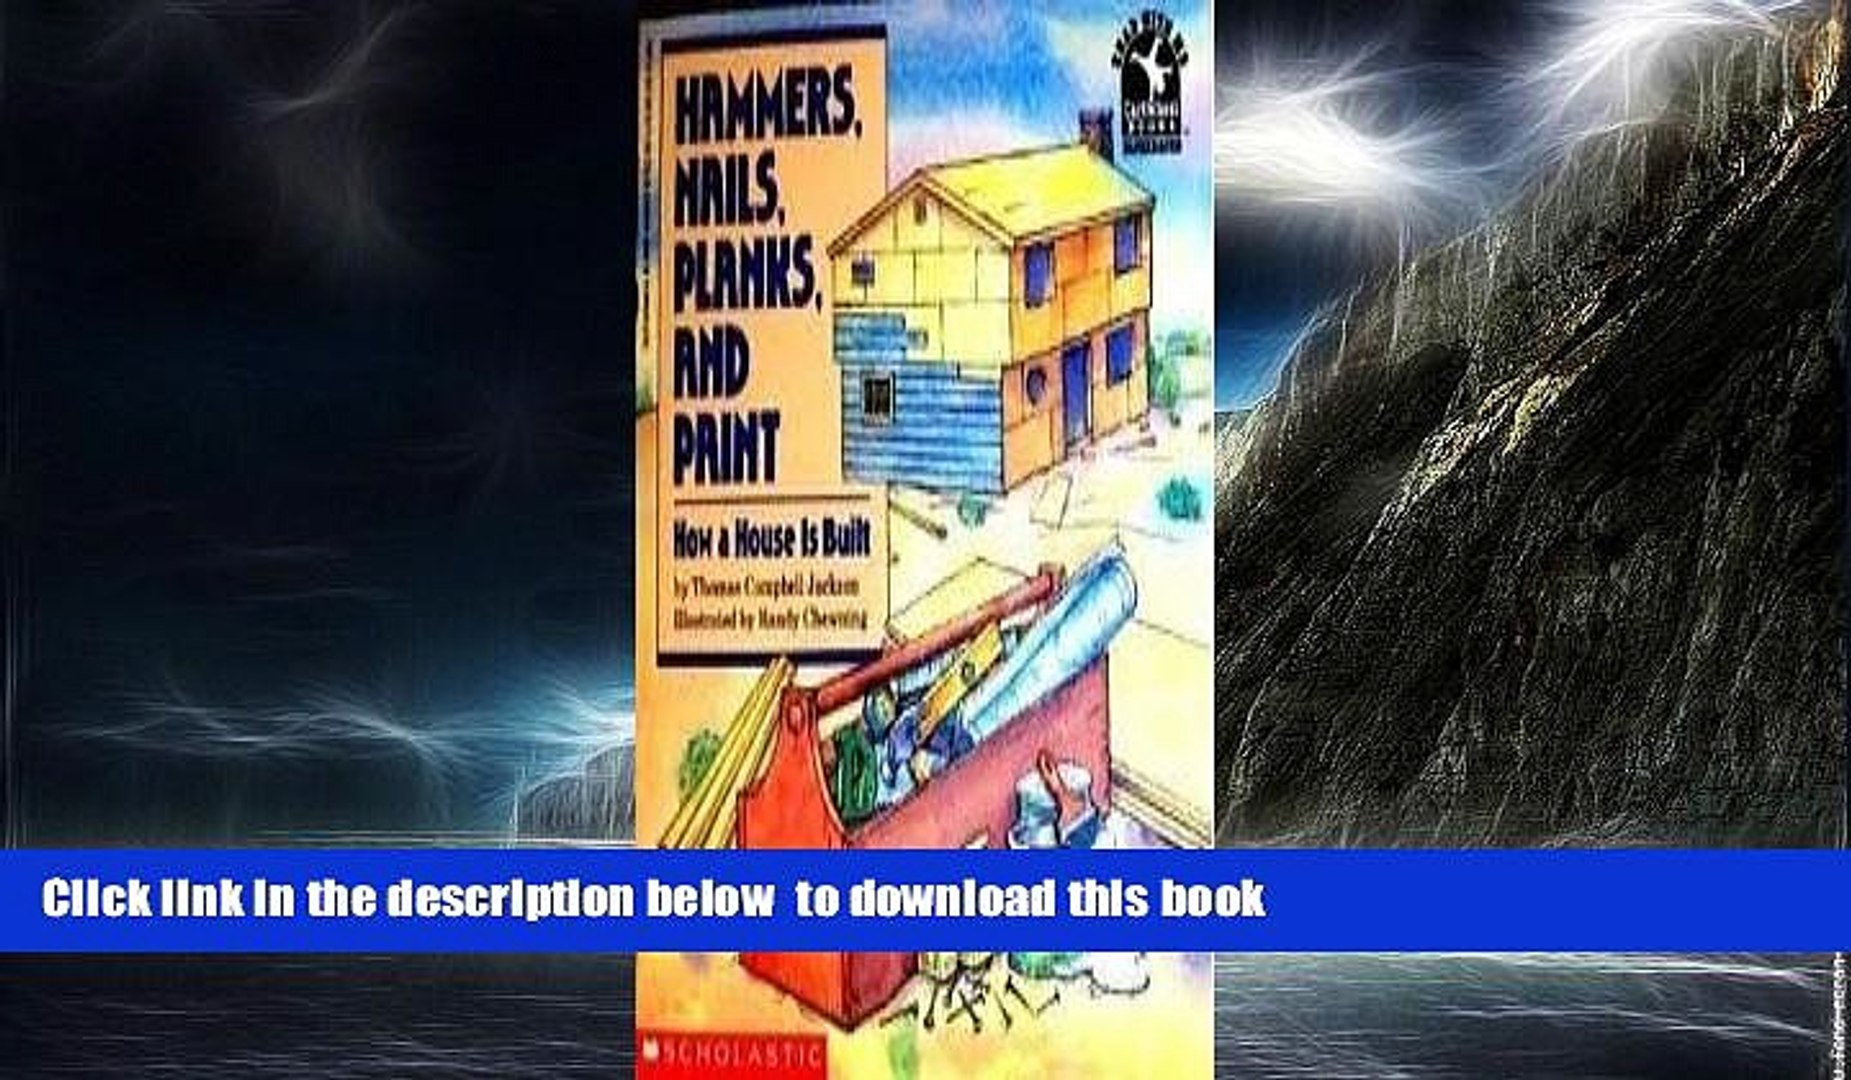 {BEST PDF |PDF [FREE] DOWNLOAD | PDF [DOWNLOAD] Hammers, Nails, Planks, and Paint: How a House Is